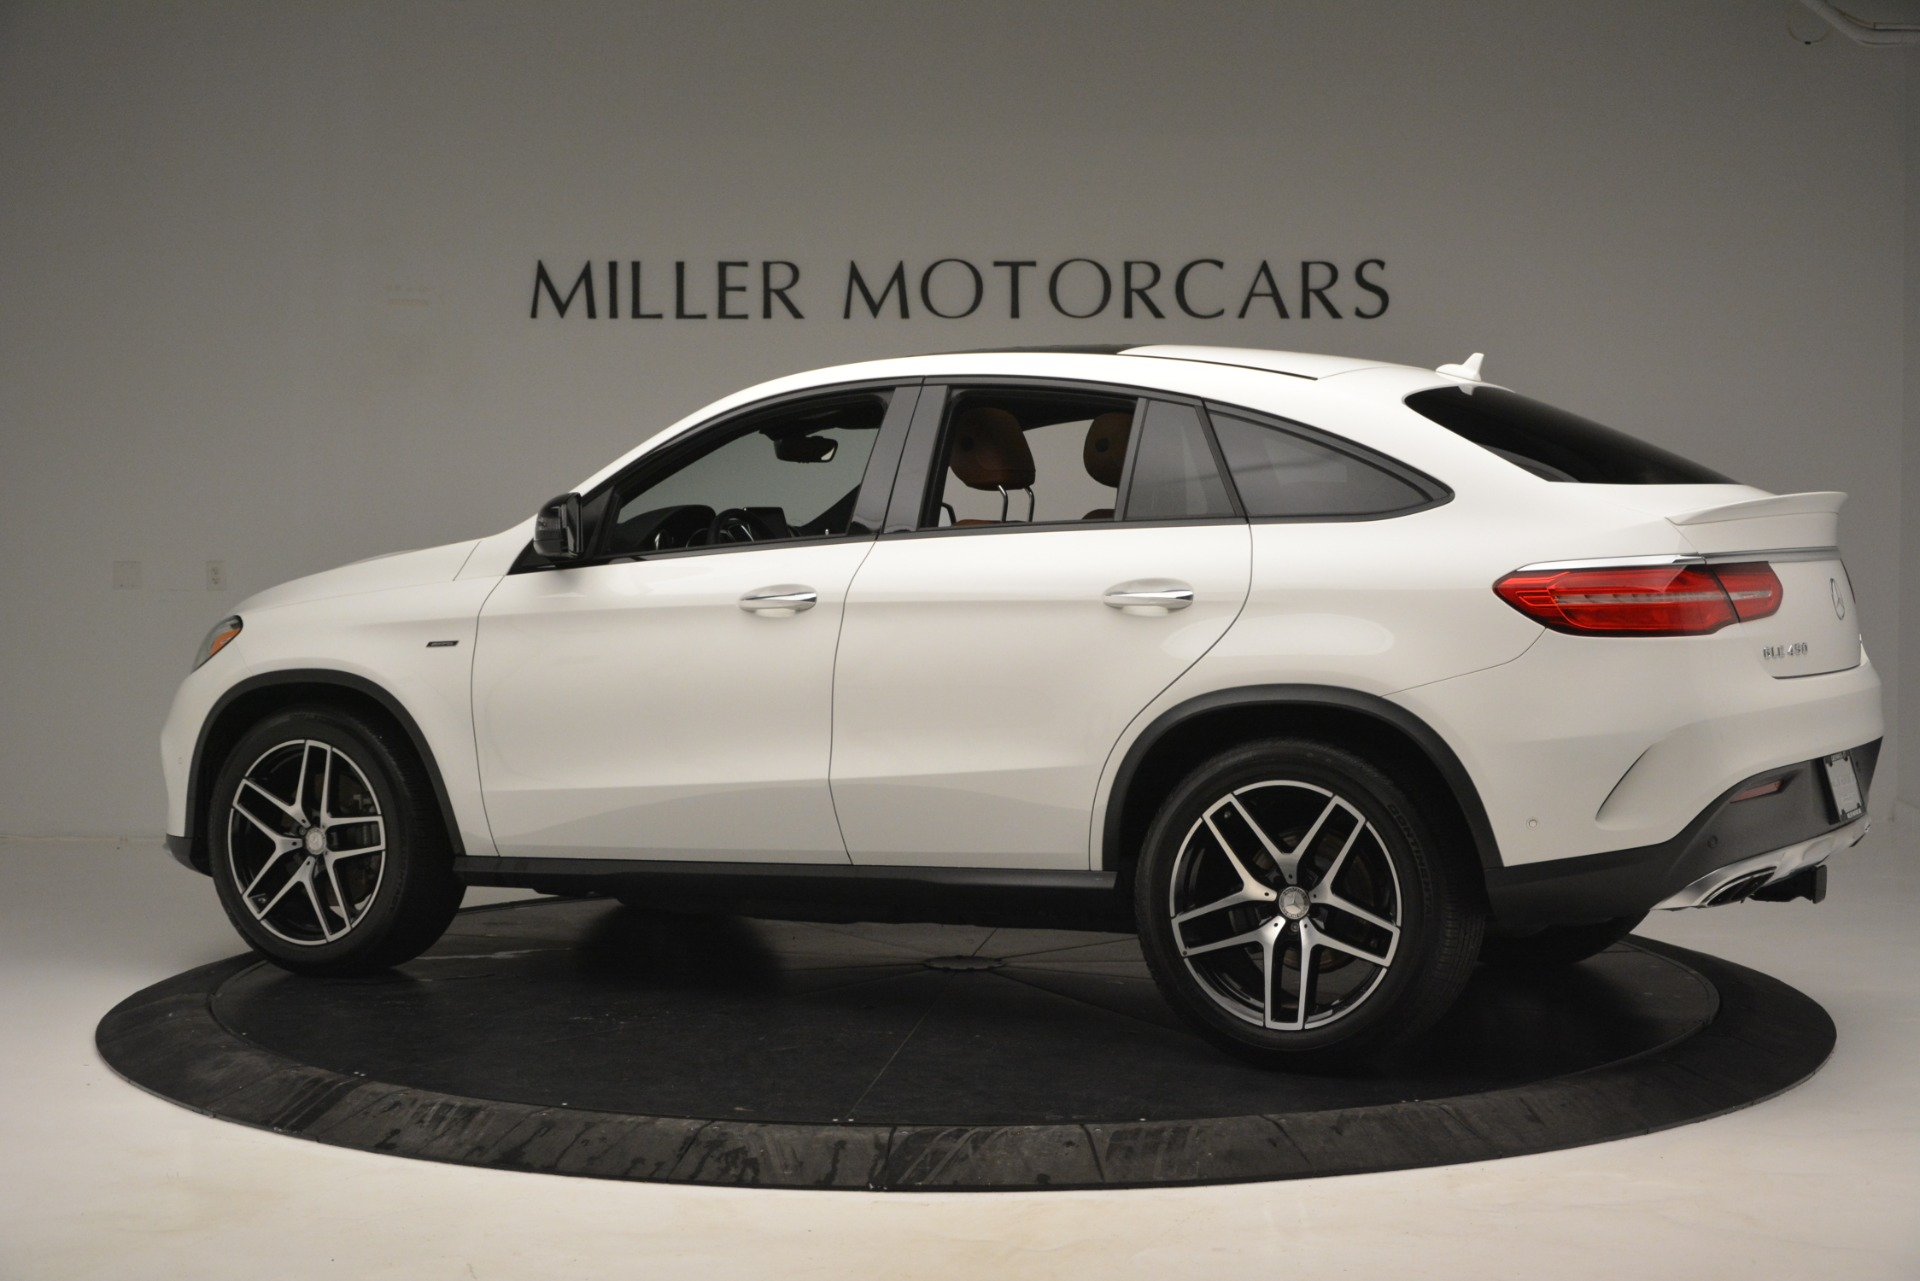 Used 2016 Mercedes-Benz GLE 450 AMG Coupe 4MATIC For Sale In Greenwich, CT 2787_p4